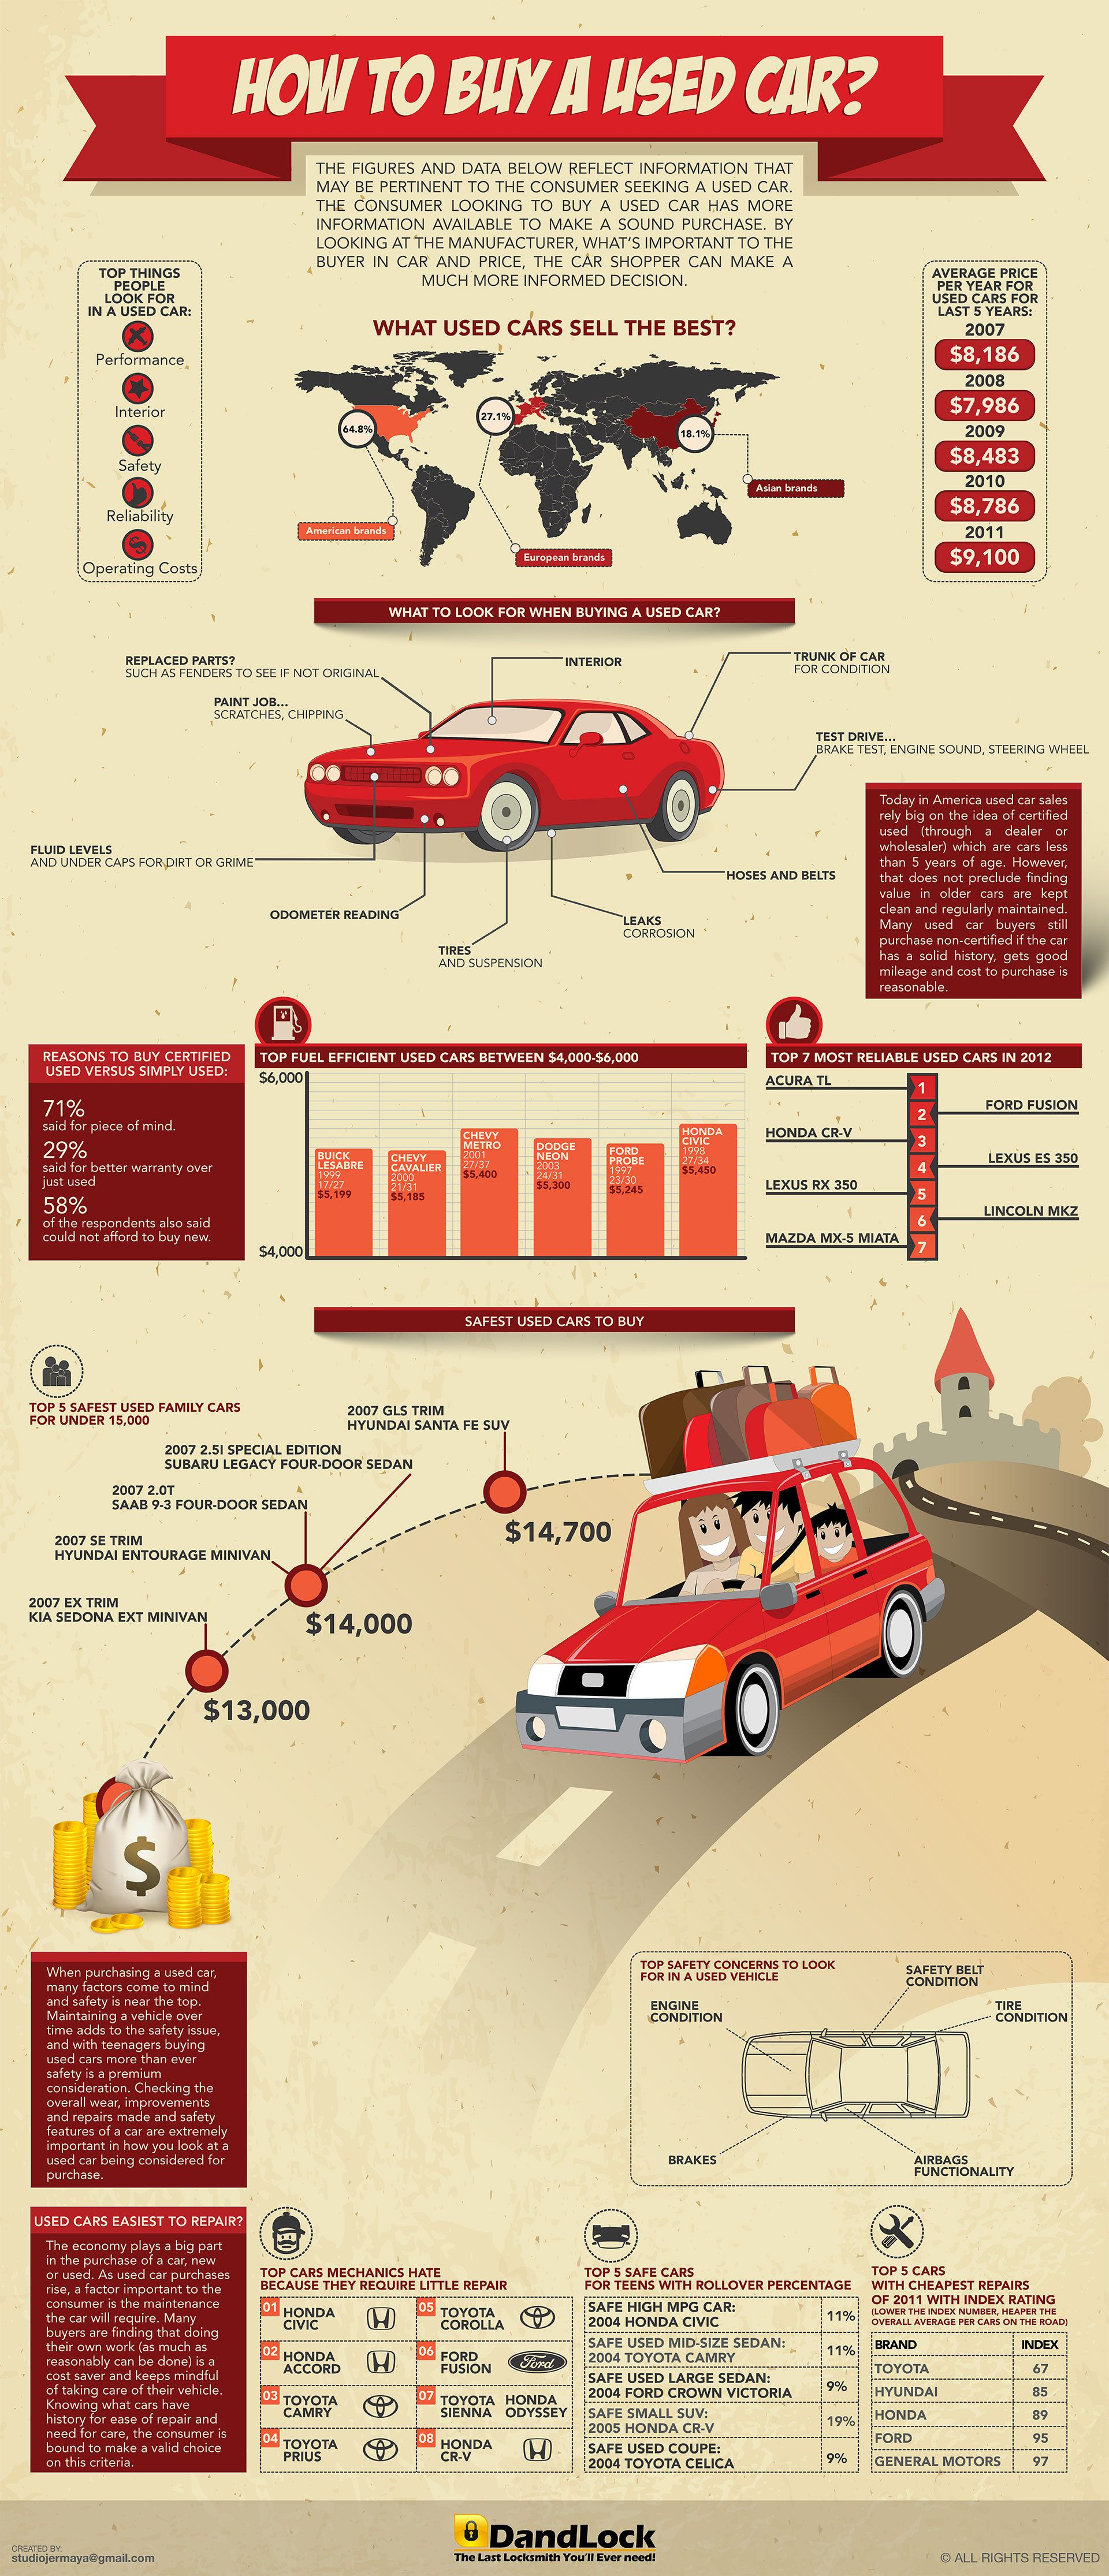 How to Buy a Used Car [INFOGRAPHIC]